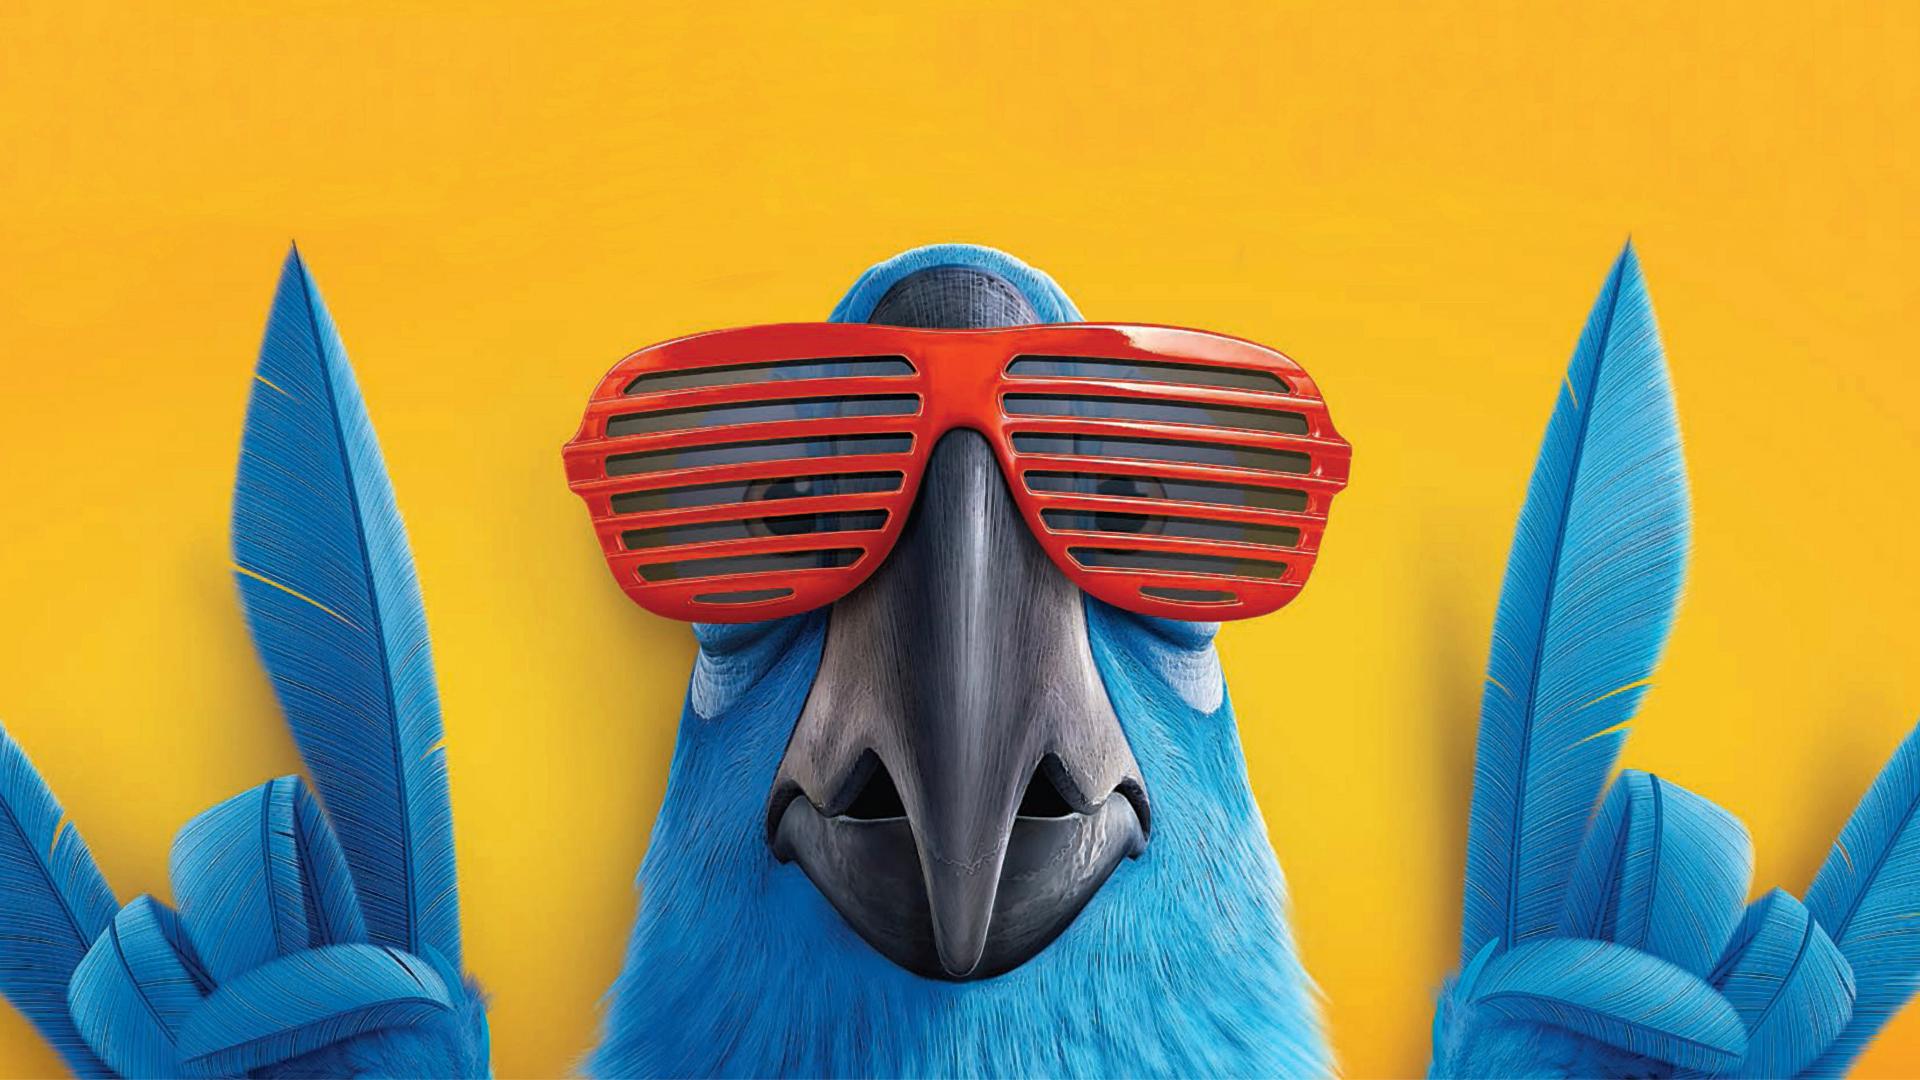 blu rio 2 movie 9c wallpaper hd